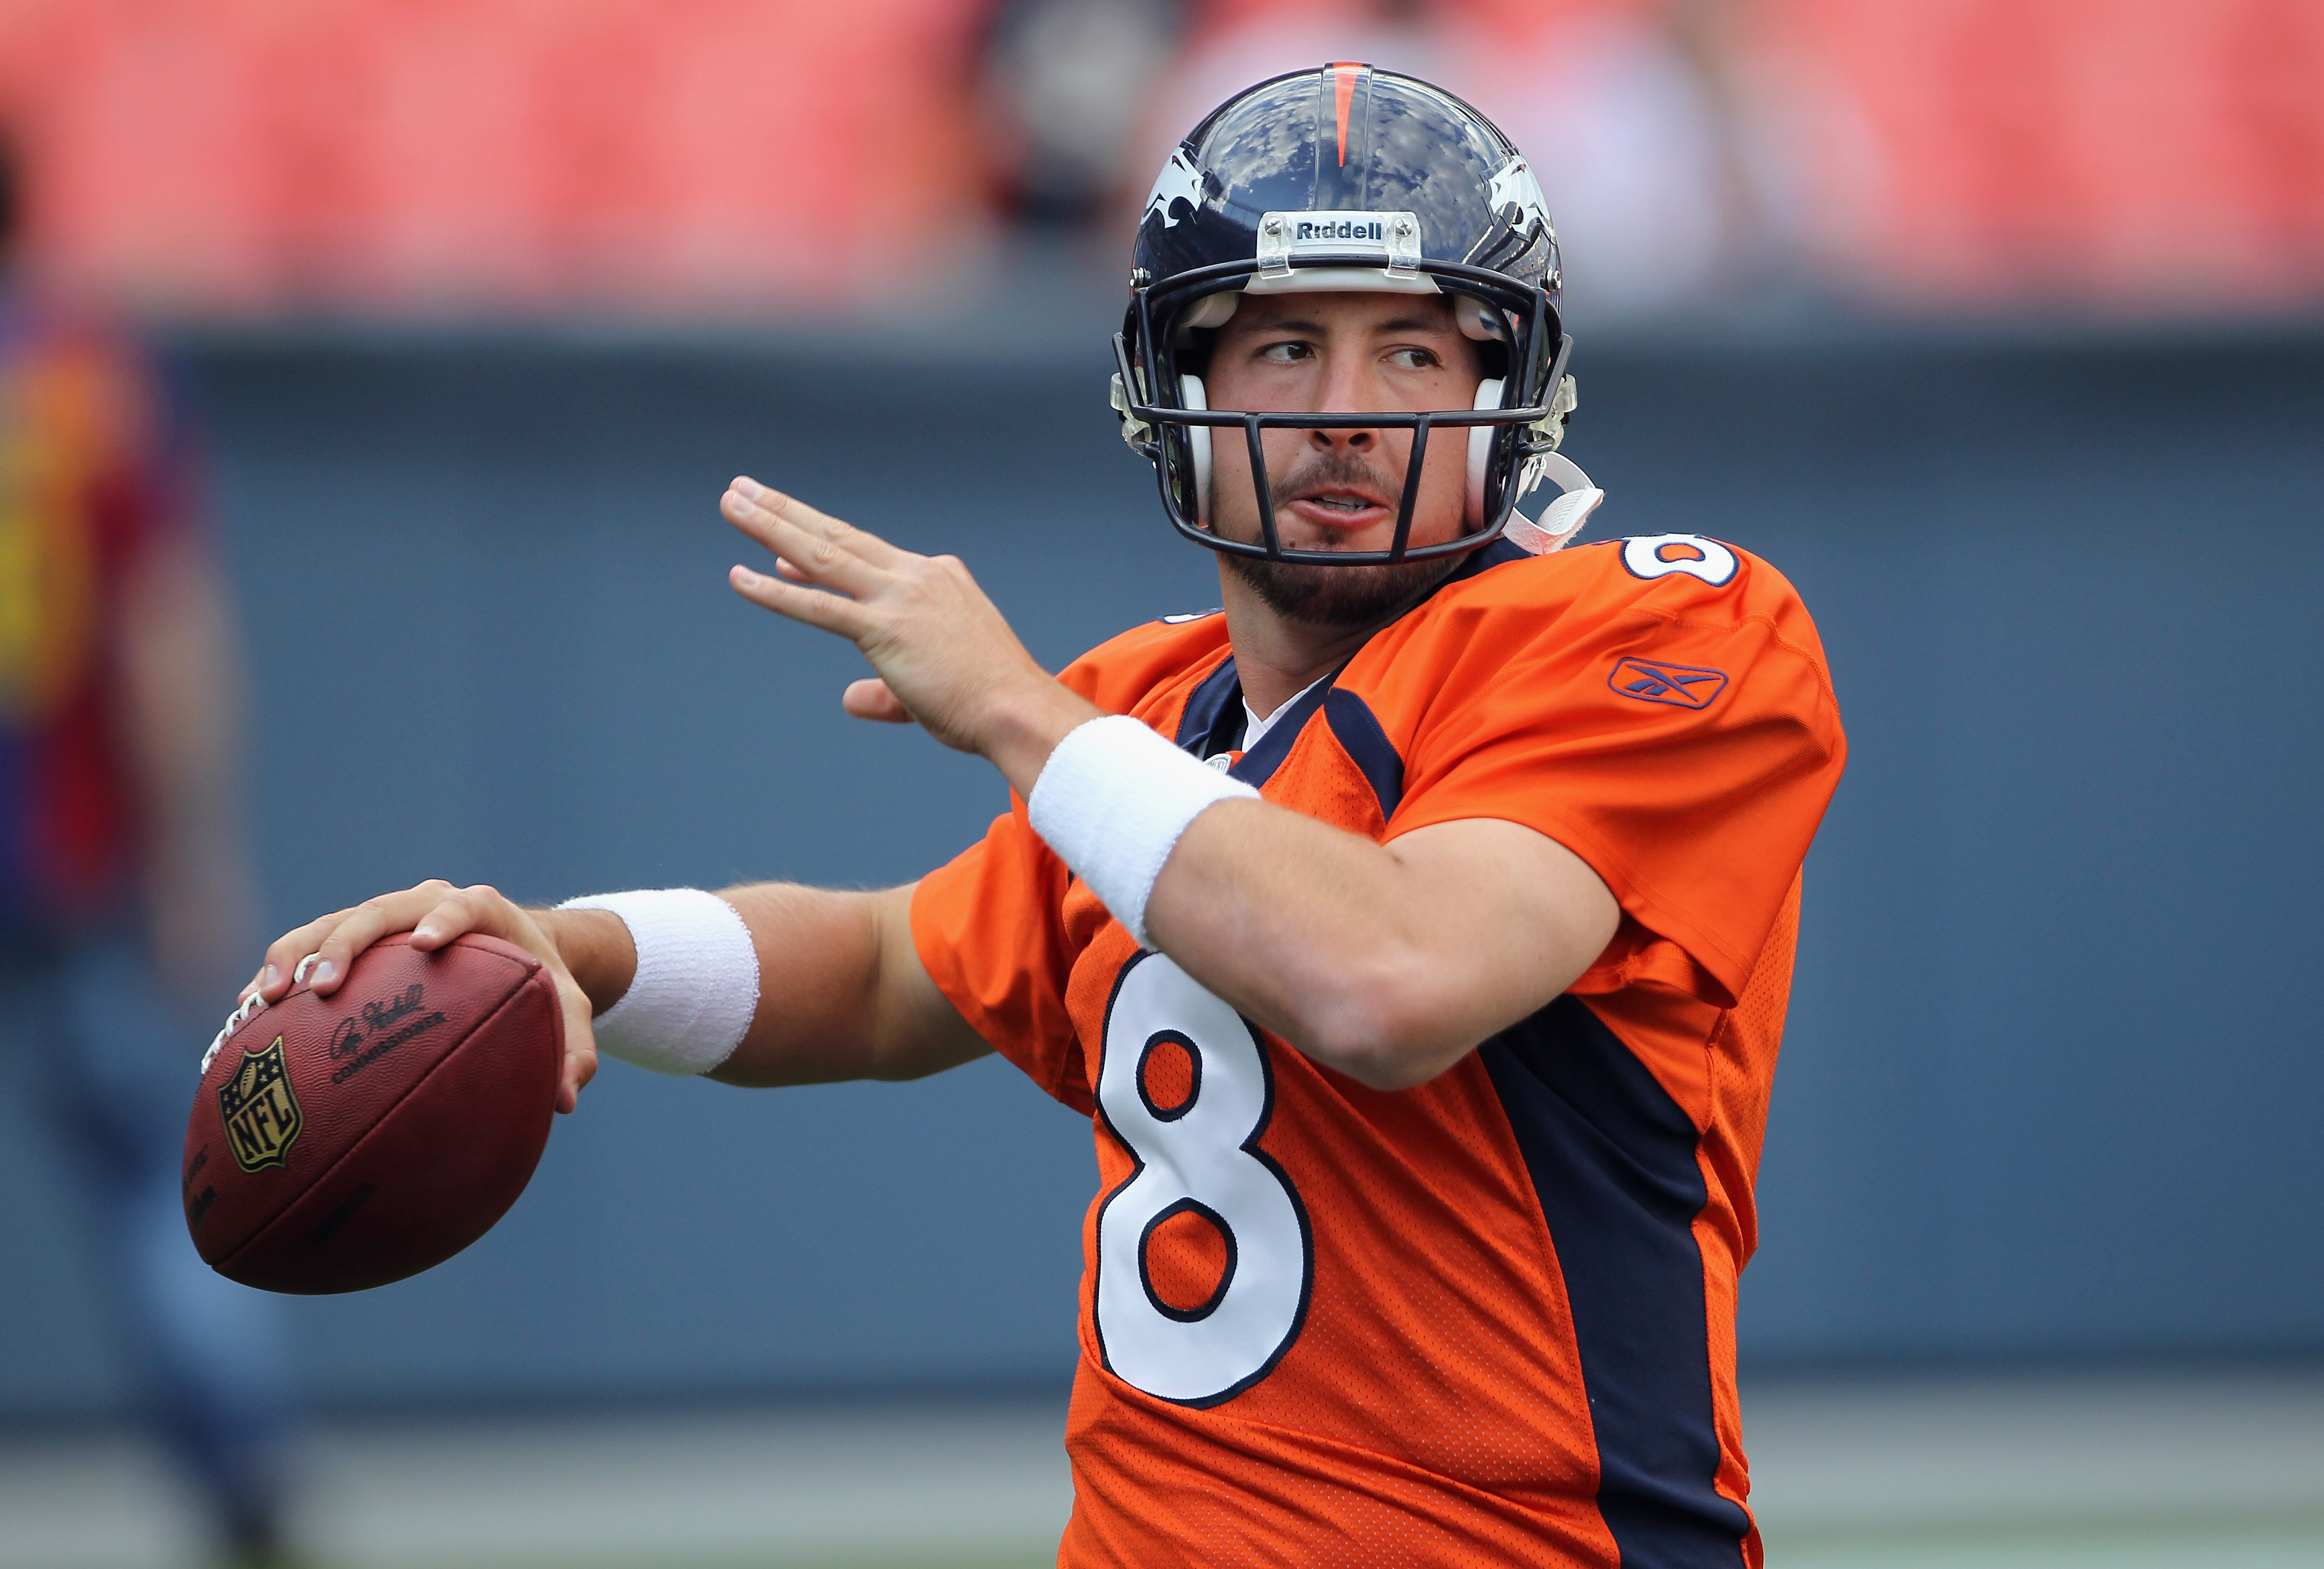 DENVER - AUGUST 21:  Quarterback Kyle Orton #8 of the Denver Broncos warms up prior to facing the Detroit Lions during preseason NFL action at INVESCO Field at Mile High on August 21, 2010 in Denver, Colorado. The Lions defeated the Broncos 25-20.  (Photo